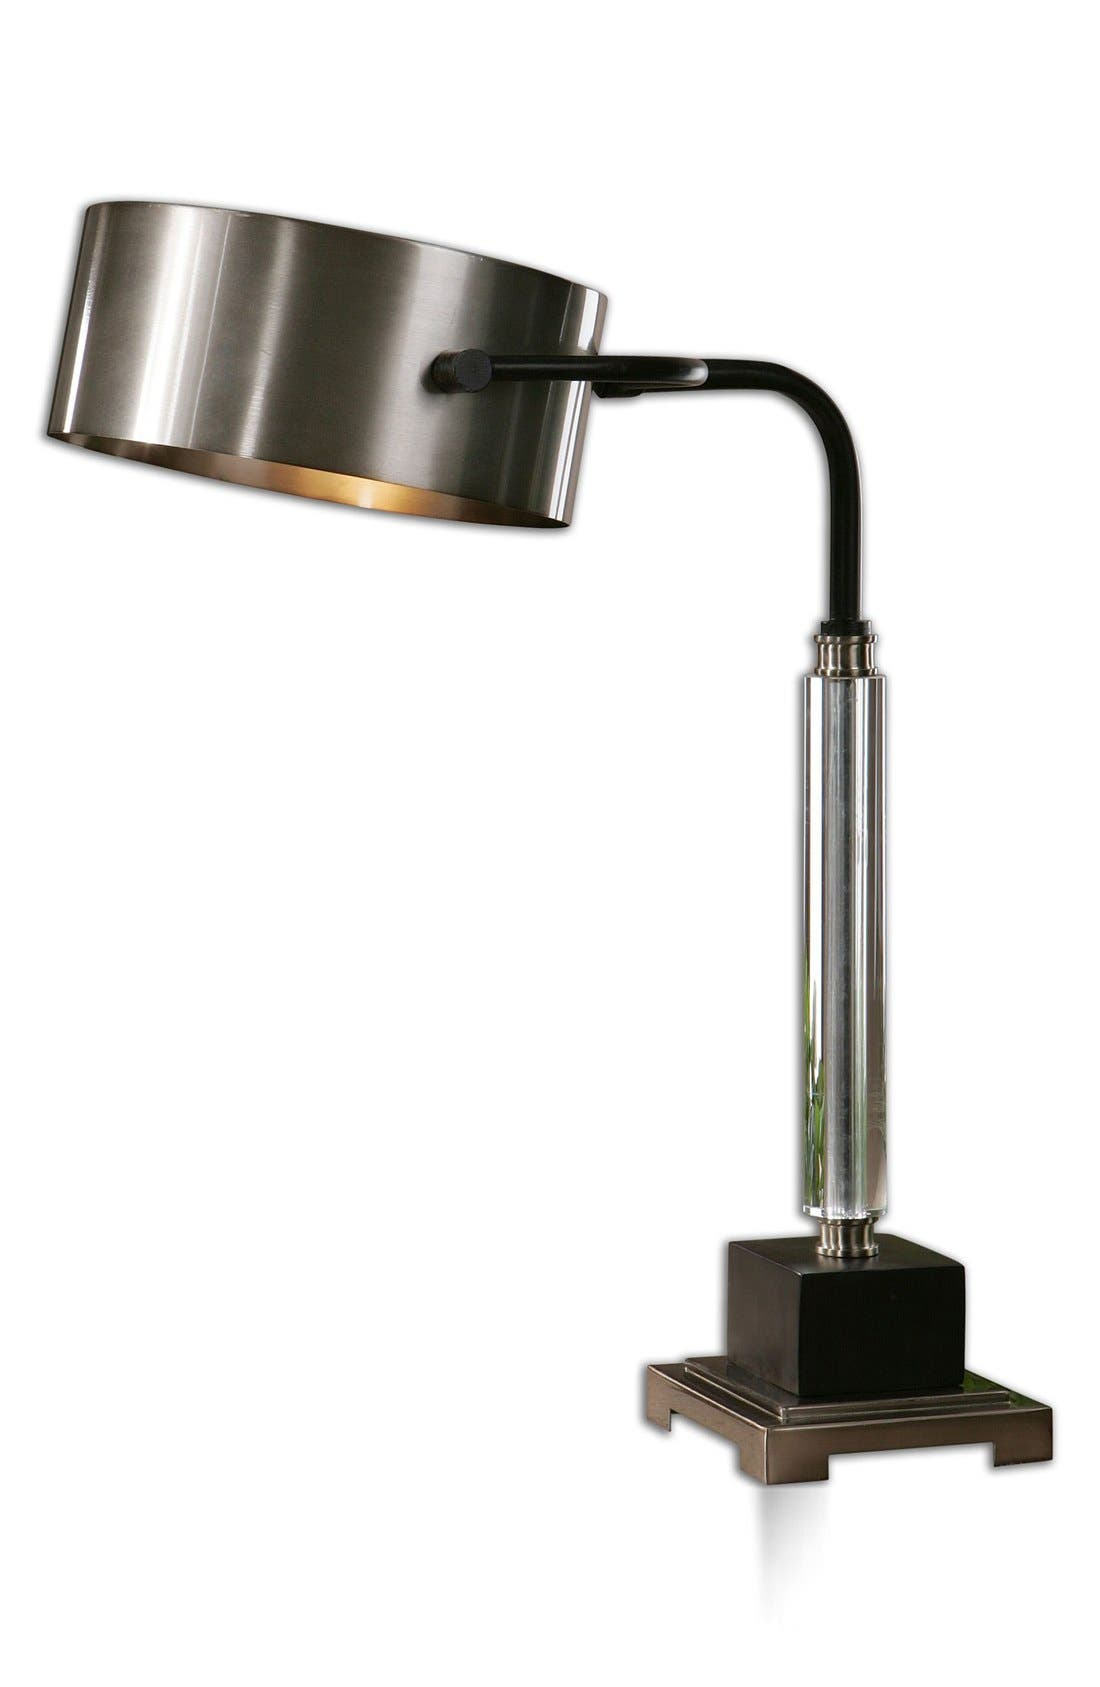 Main Image - Uttermost 'Belding' Desk Lamp